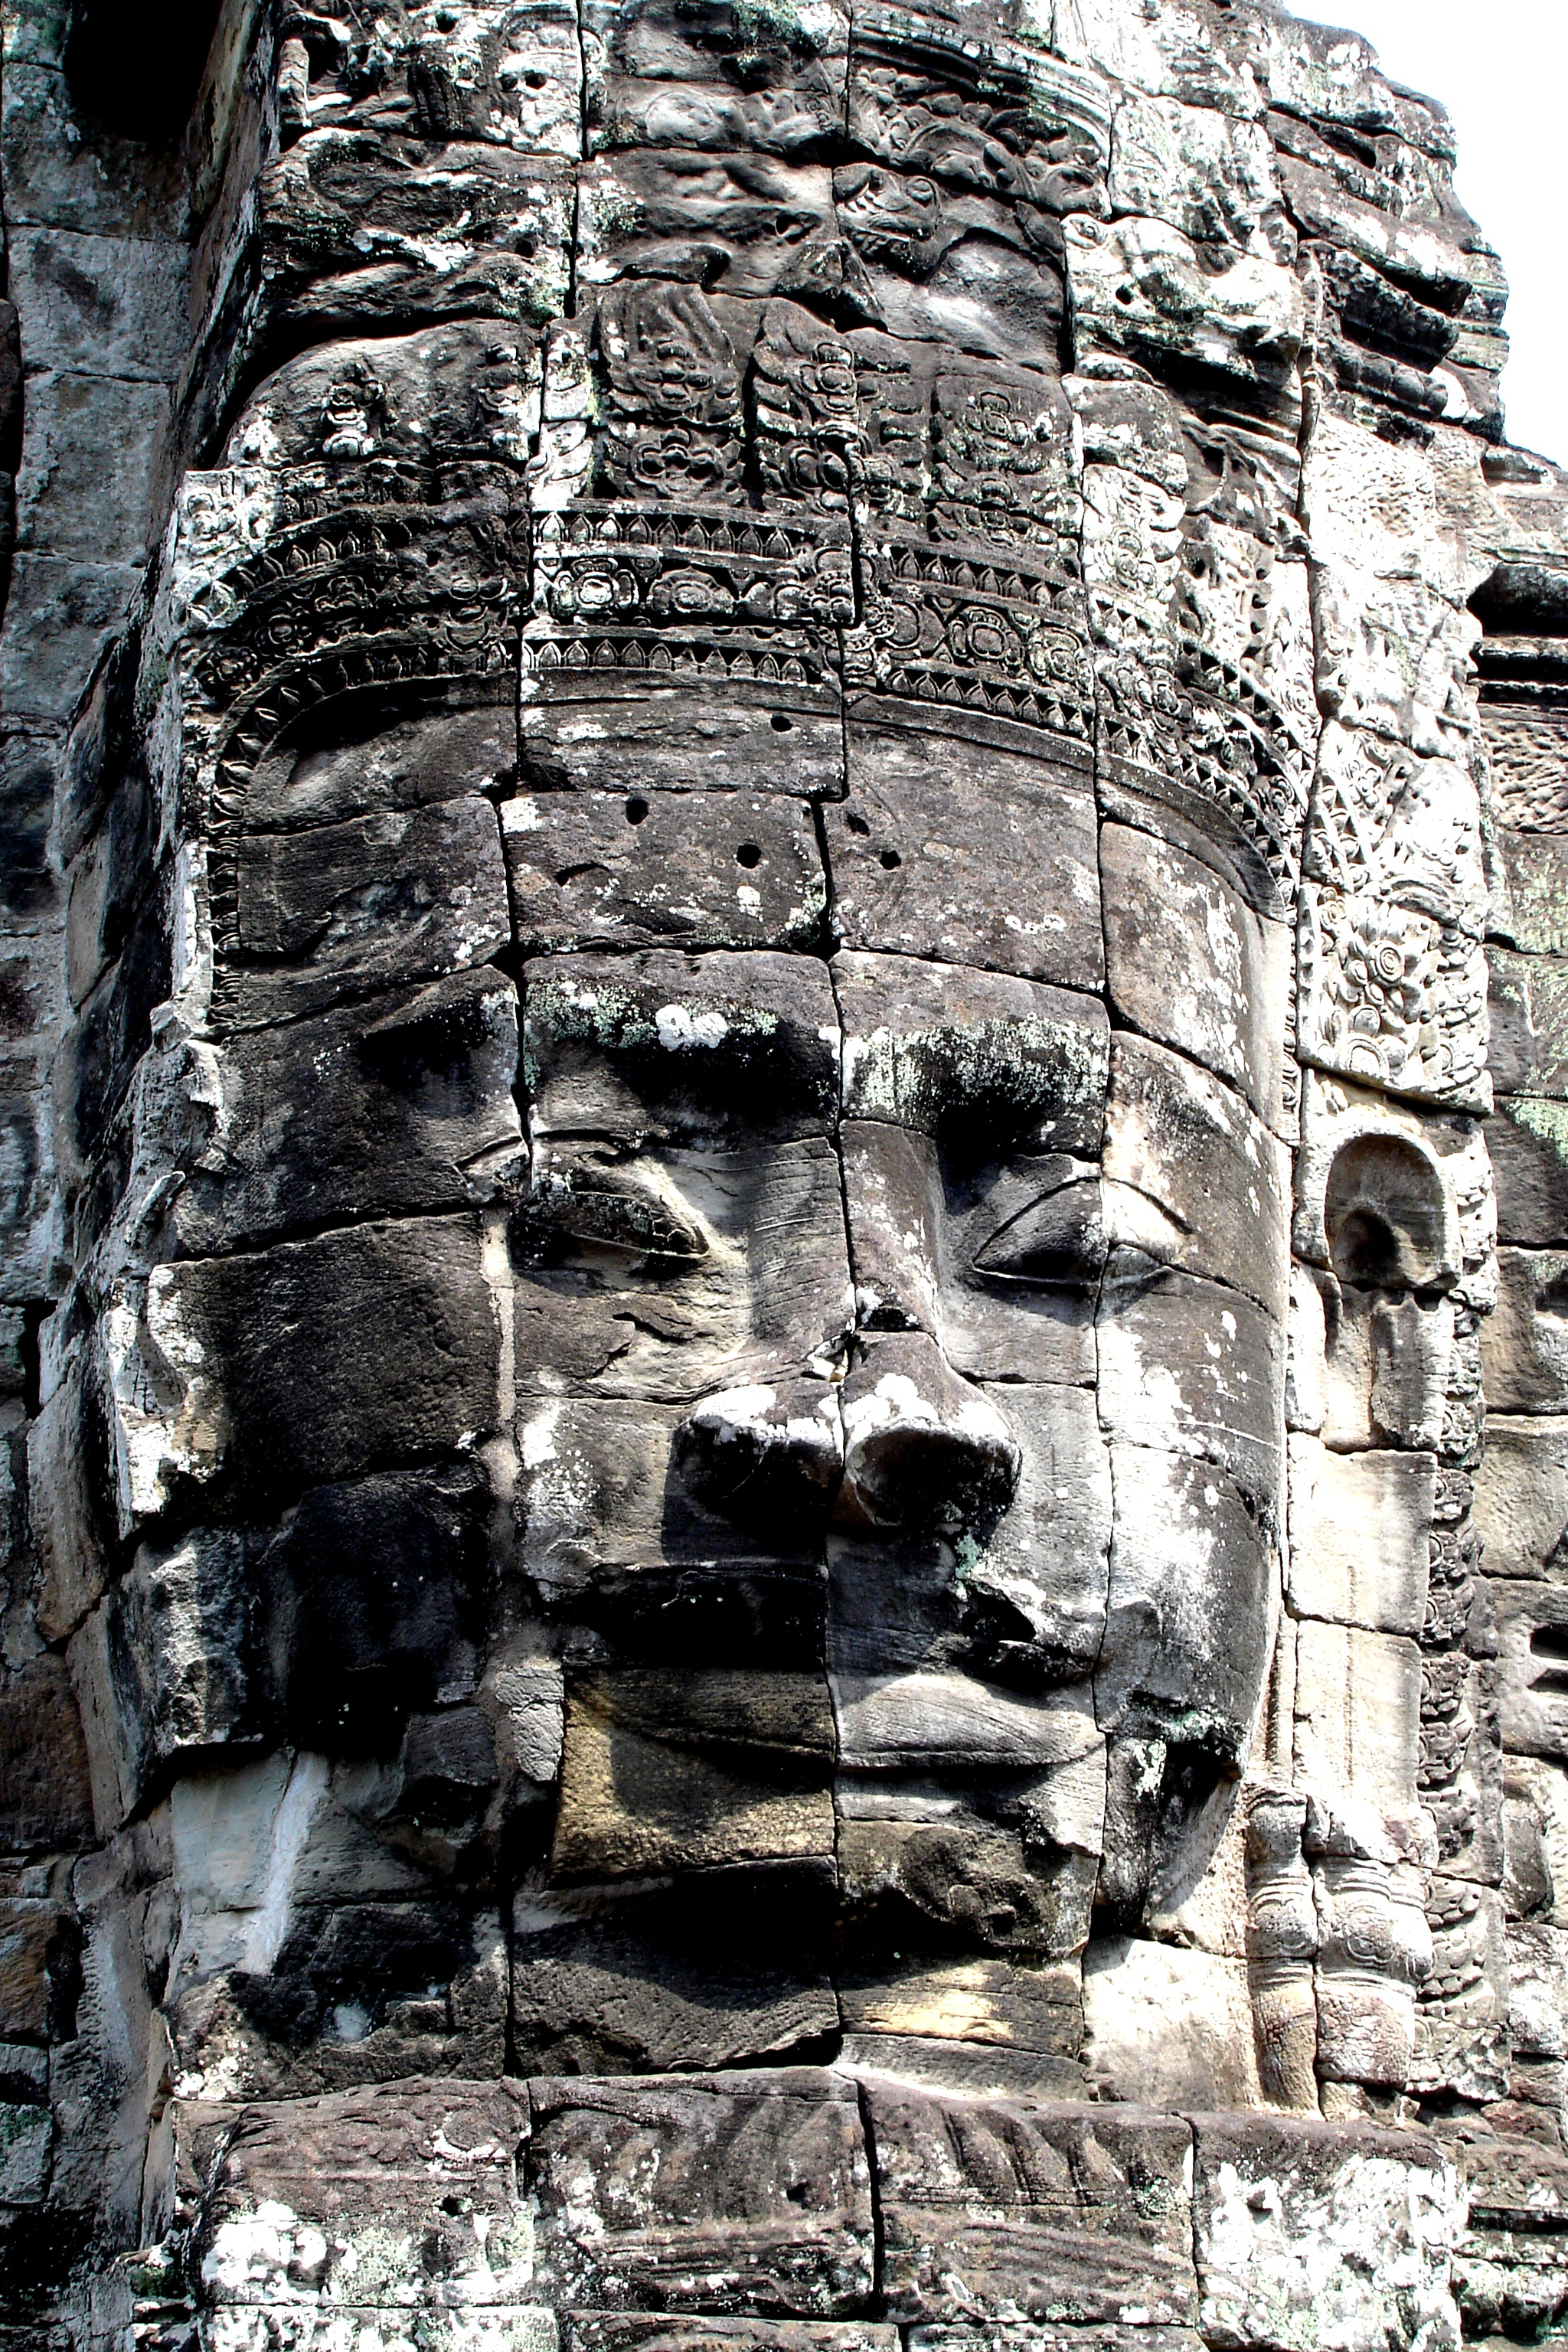 Giant Smiling stone Faces of Bayon